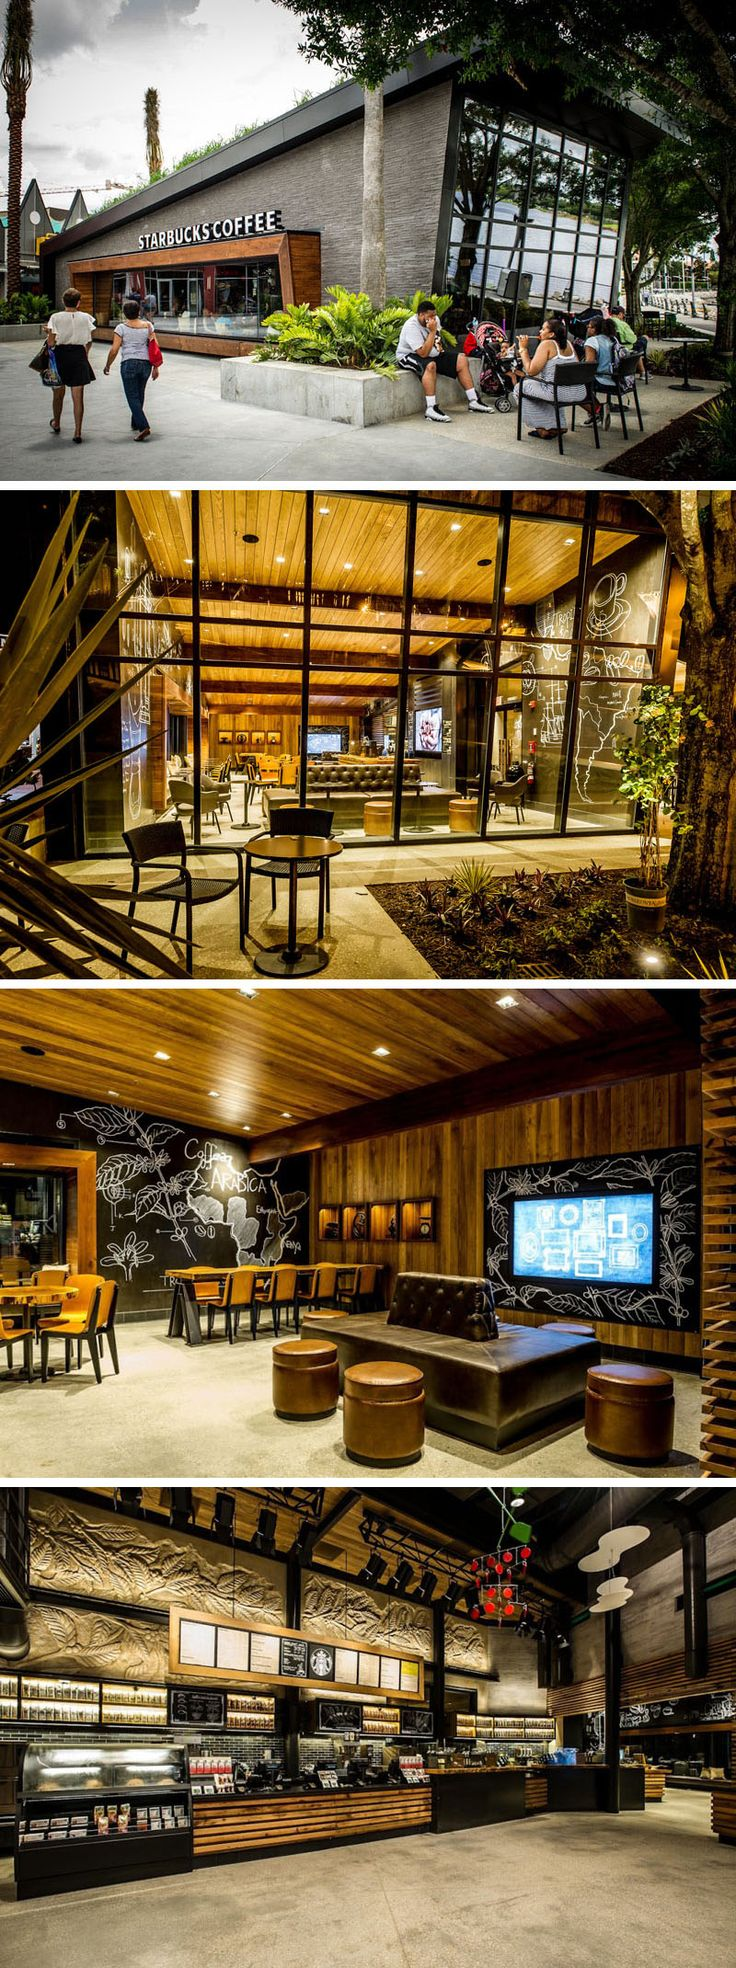 11 Of The Most Uniquely Designed Starbucks Coffee Shops From Around The World | This Starbucks location in Downtown Disney in Orlando, Florida, has lemongrass growing on the sloped roof, while large windows allow people walking past to see into the interior that has wooden tables and chairs and comfy leather couches.